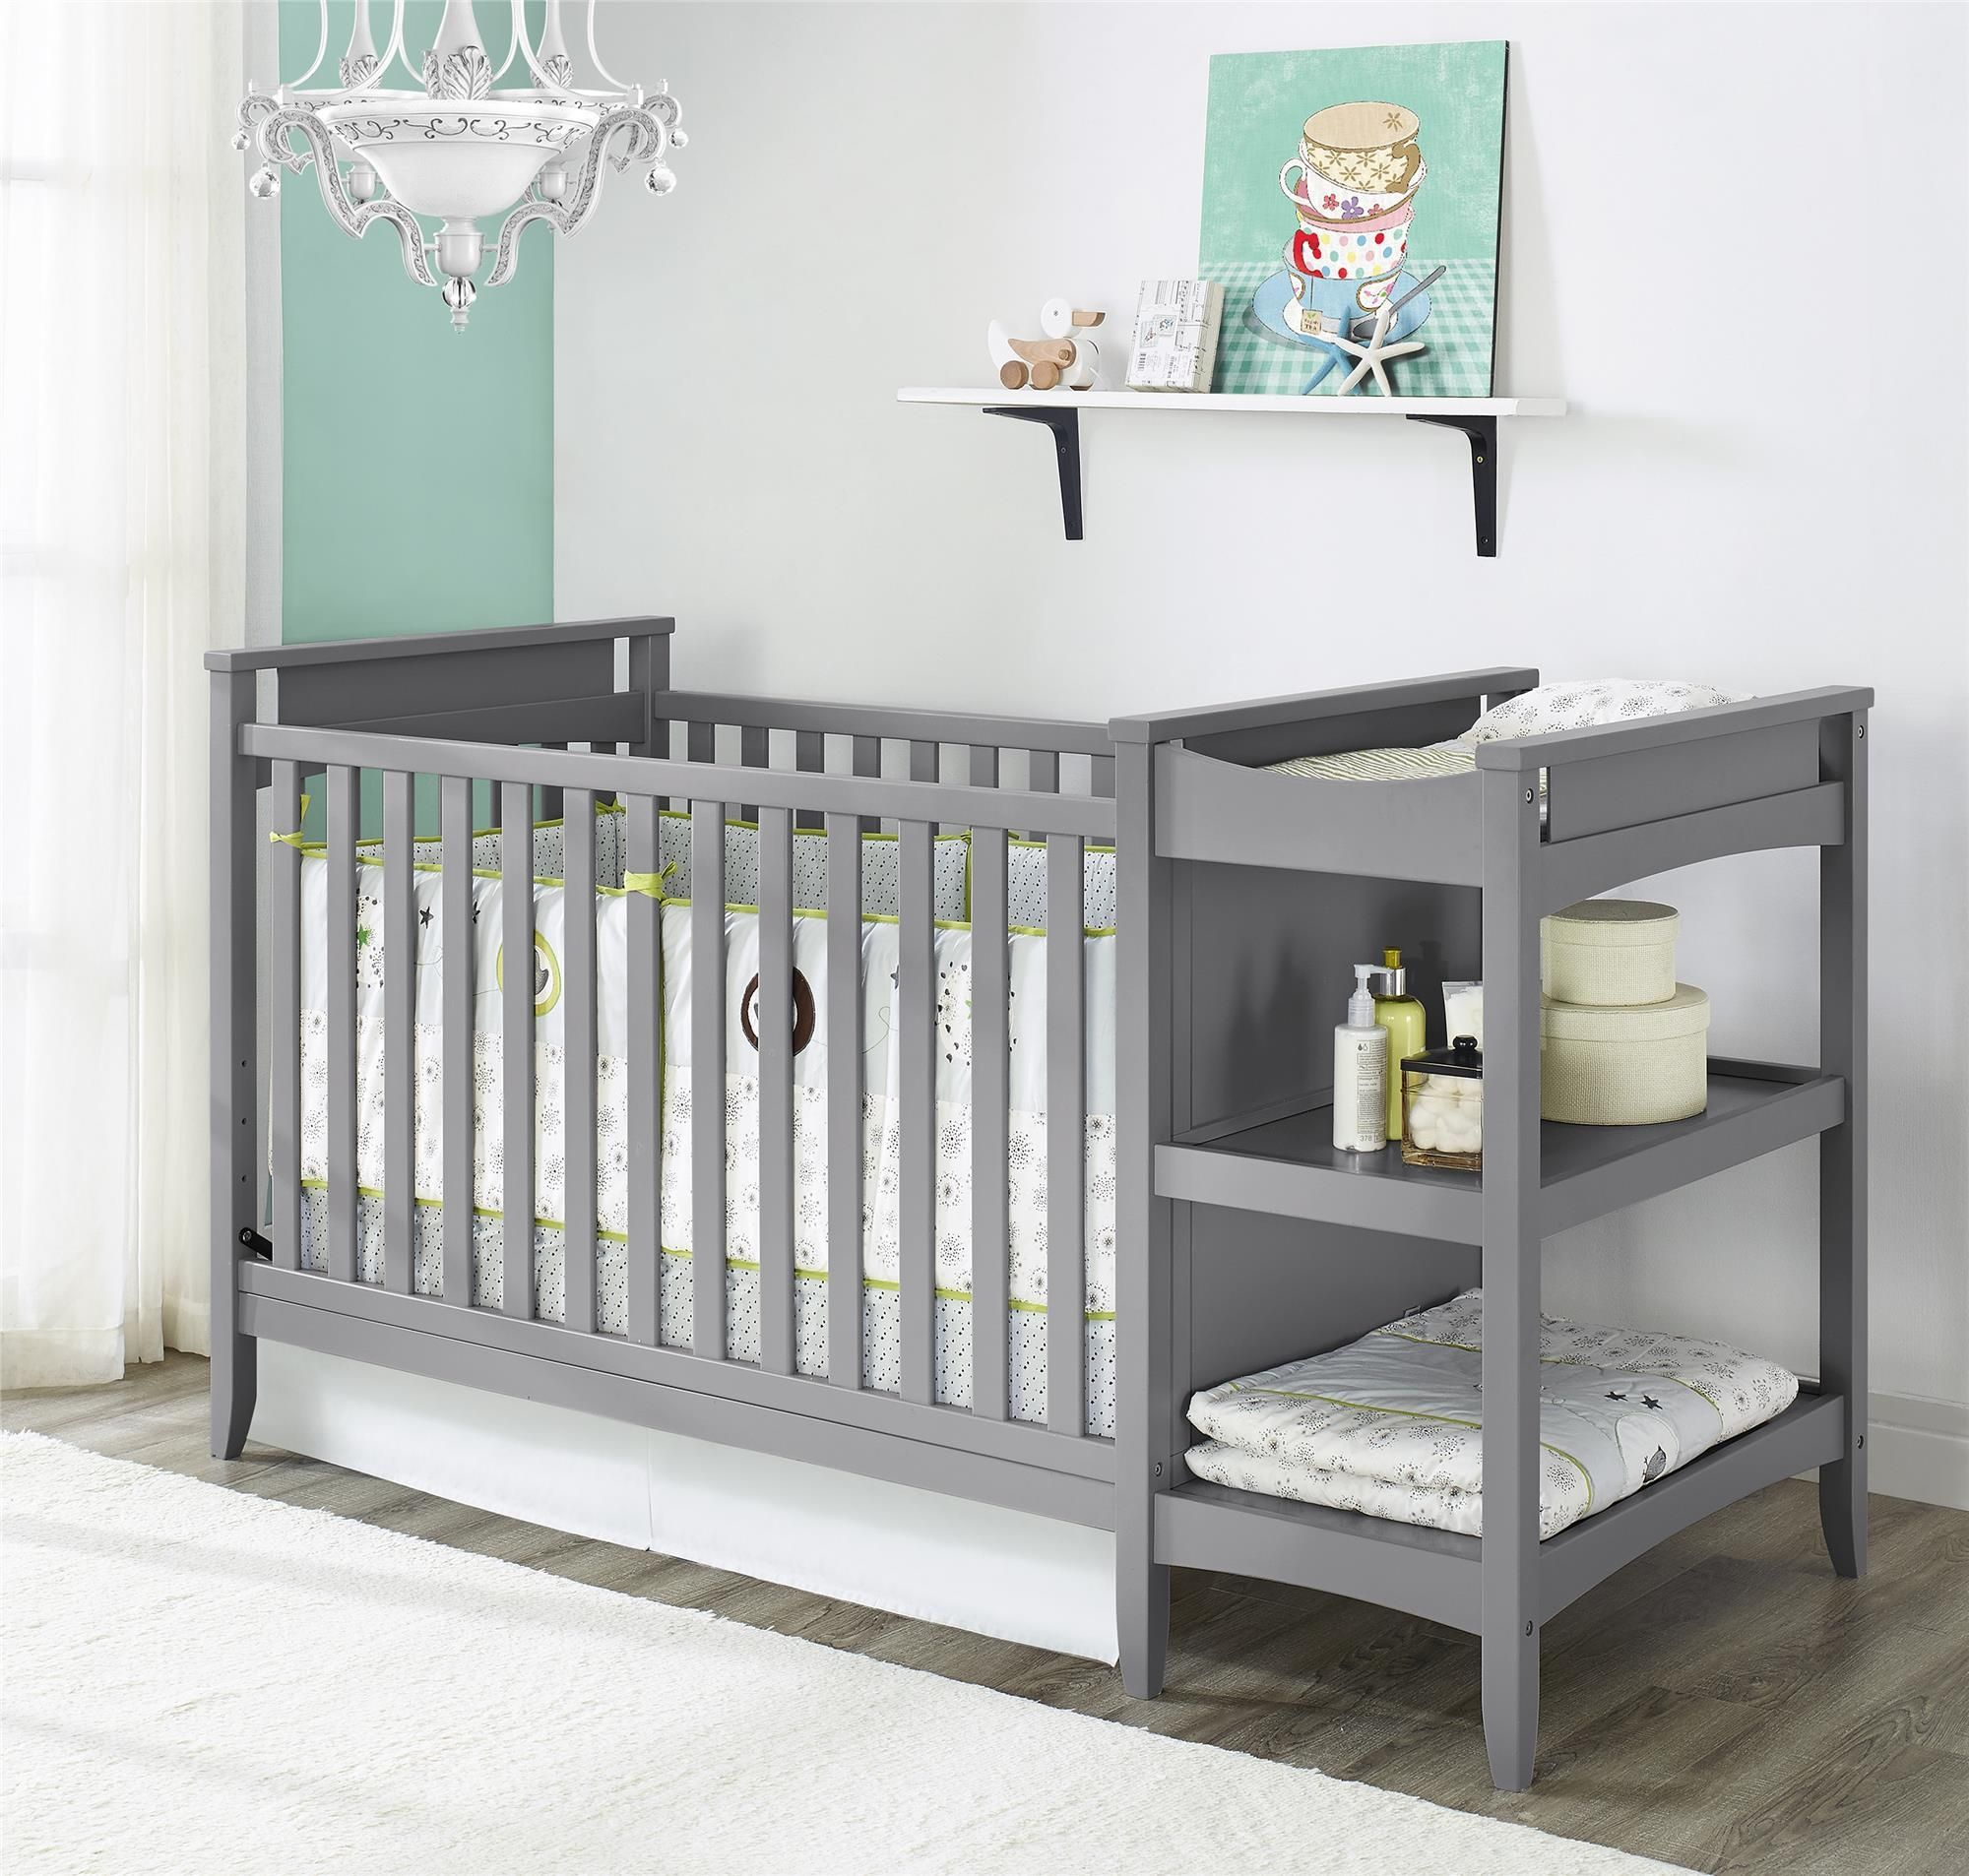 Crib Dresser And Changing Table Sets | http://samhosted.com | Pinterest